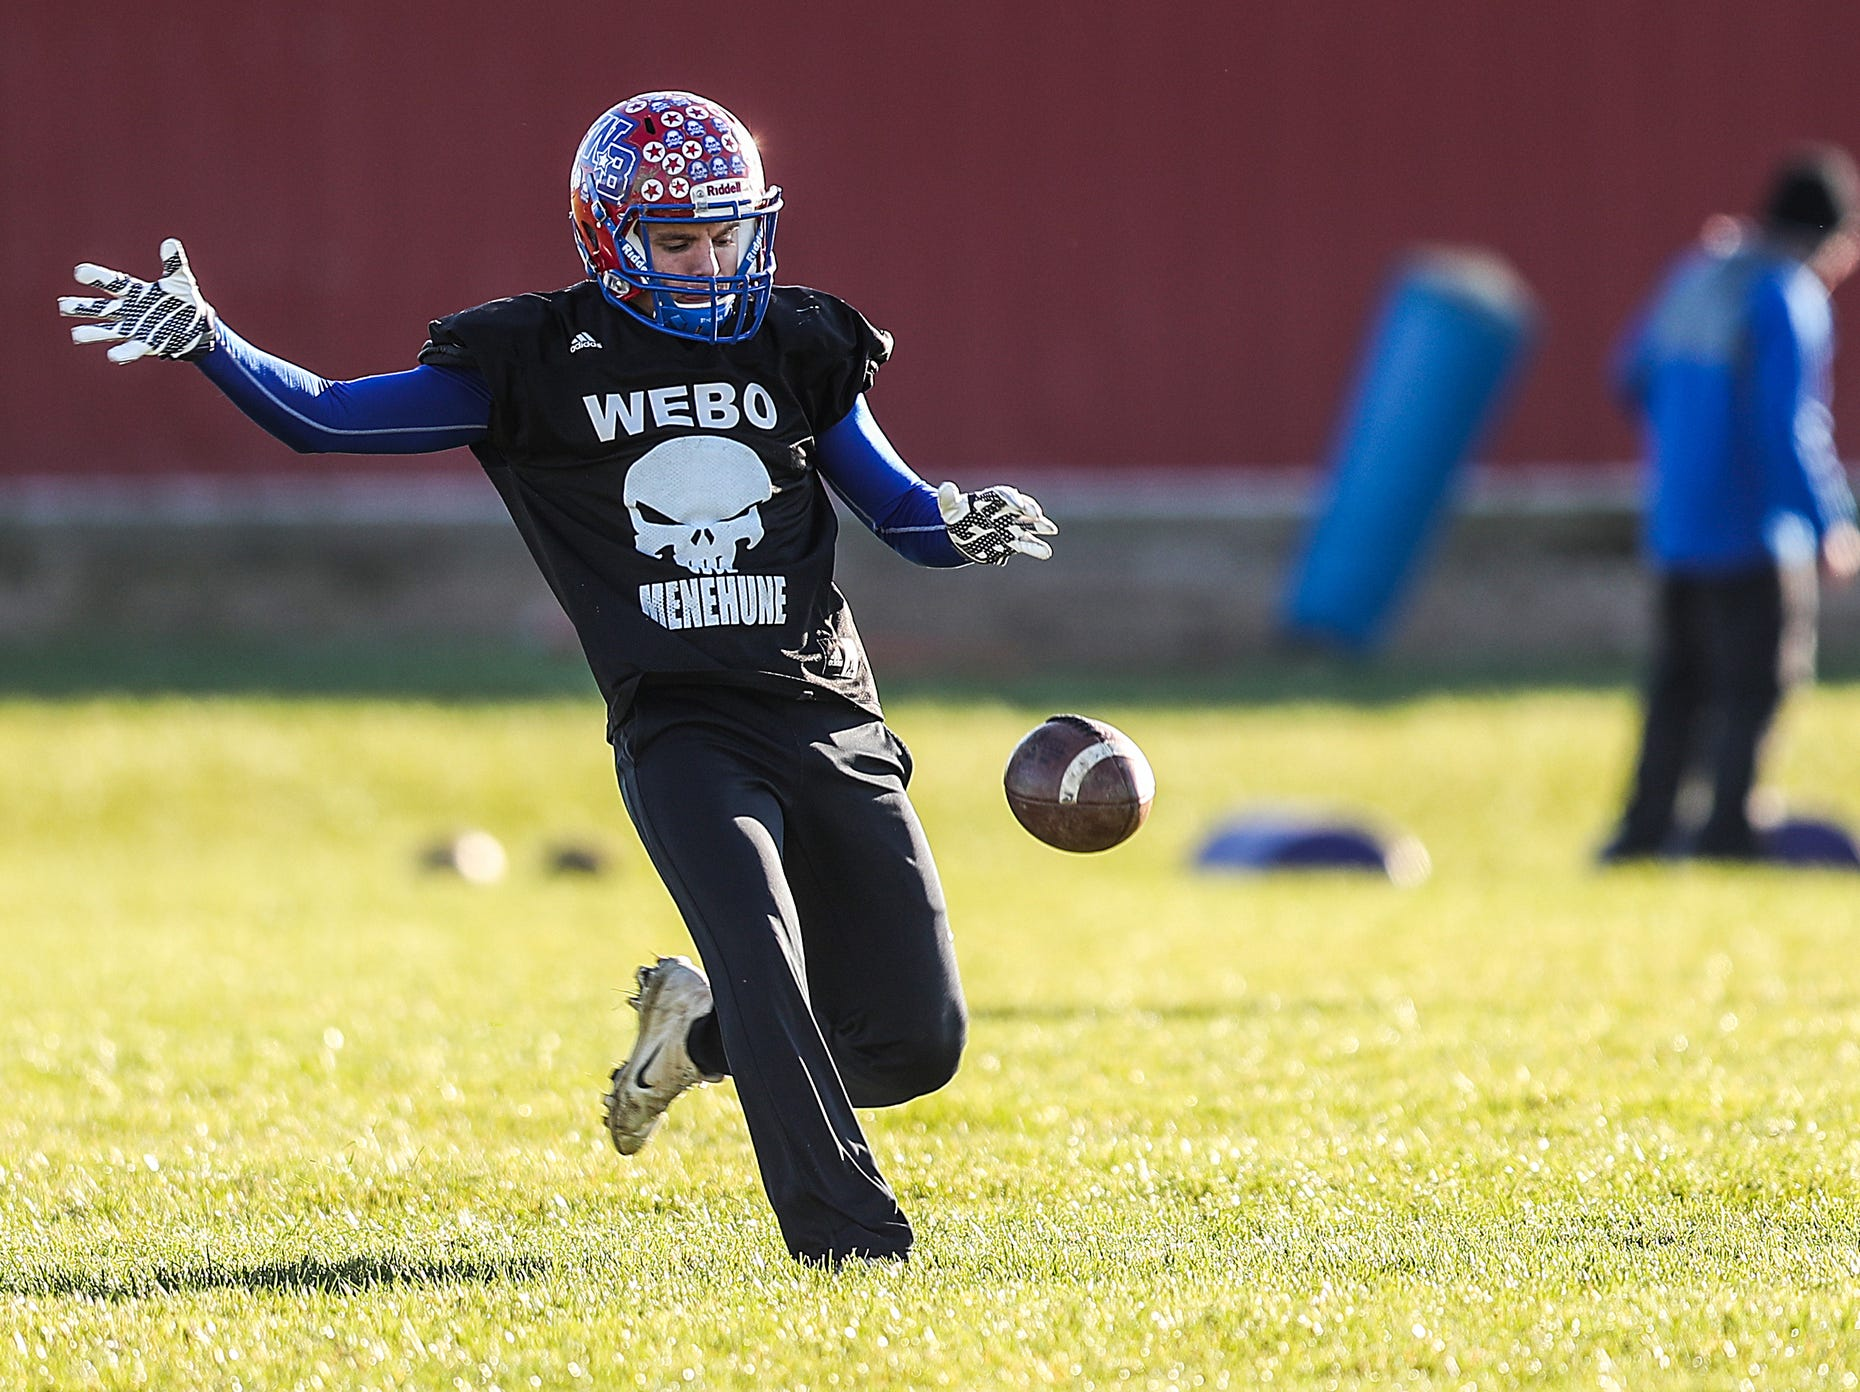 Peyton Young (18) practices punting at Western Boone Junior-Senior High School in Thornton, Ind., Wednesday, Nov. 7, 2018. Western Boone faces Scecina on Friday, Nov. 9, in the regional championship.